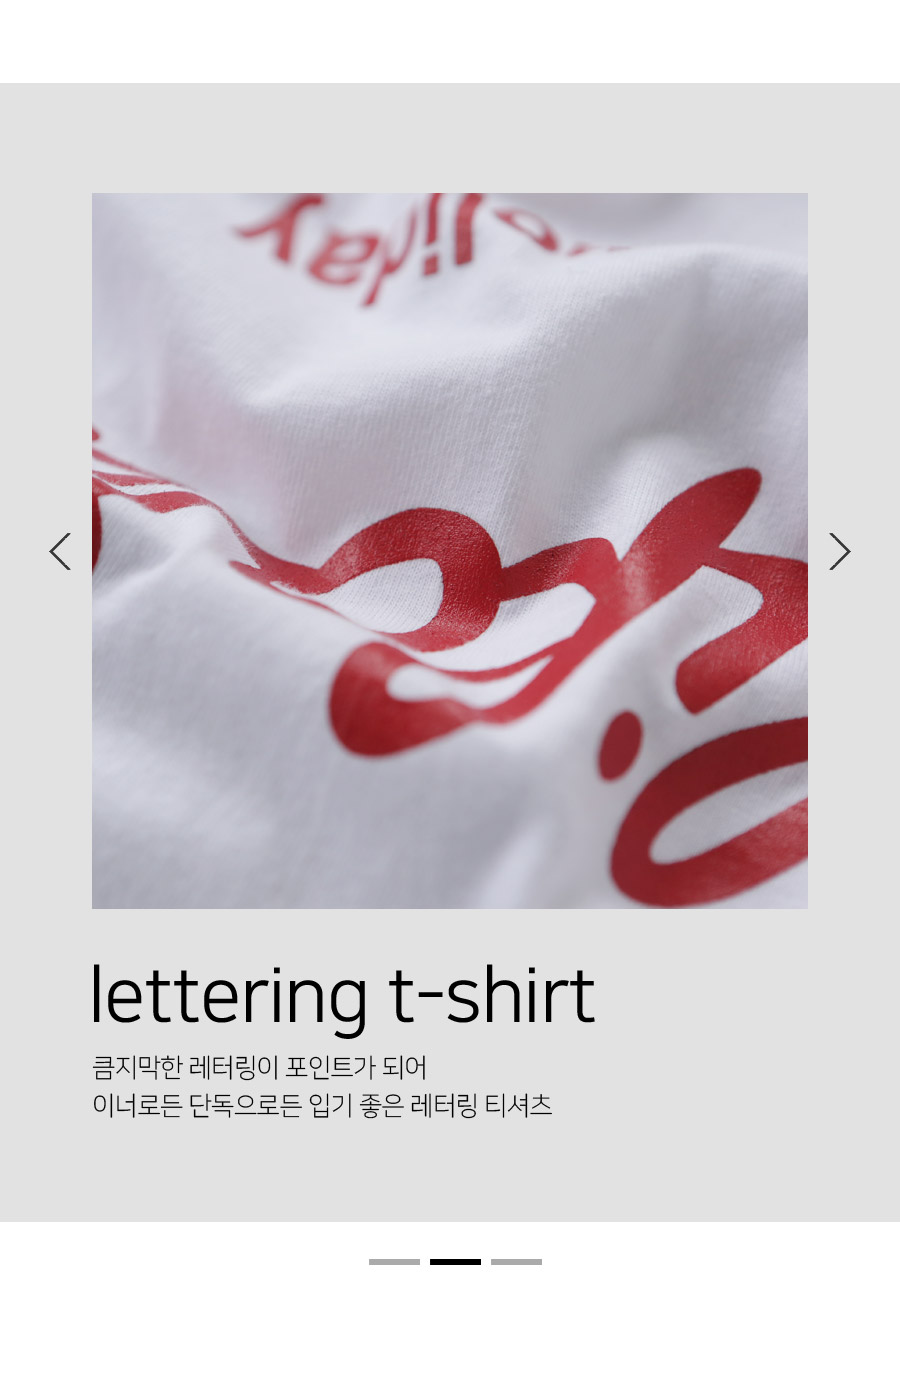 Kelly Lettering T-shirt